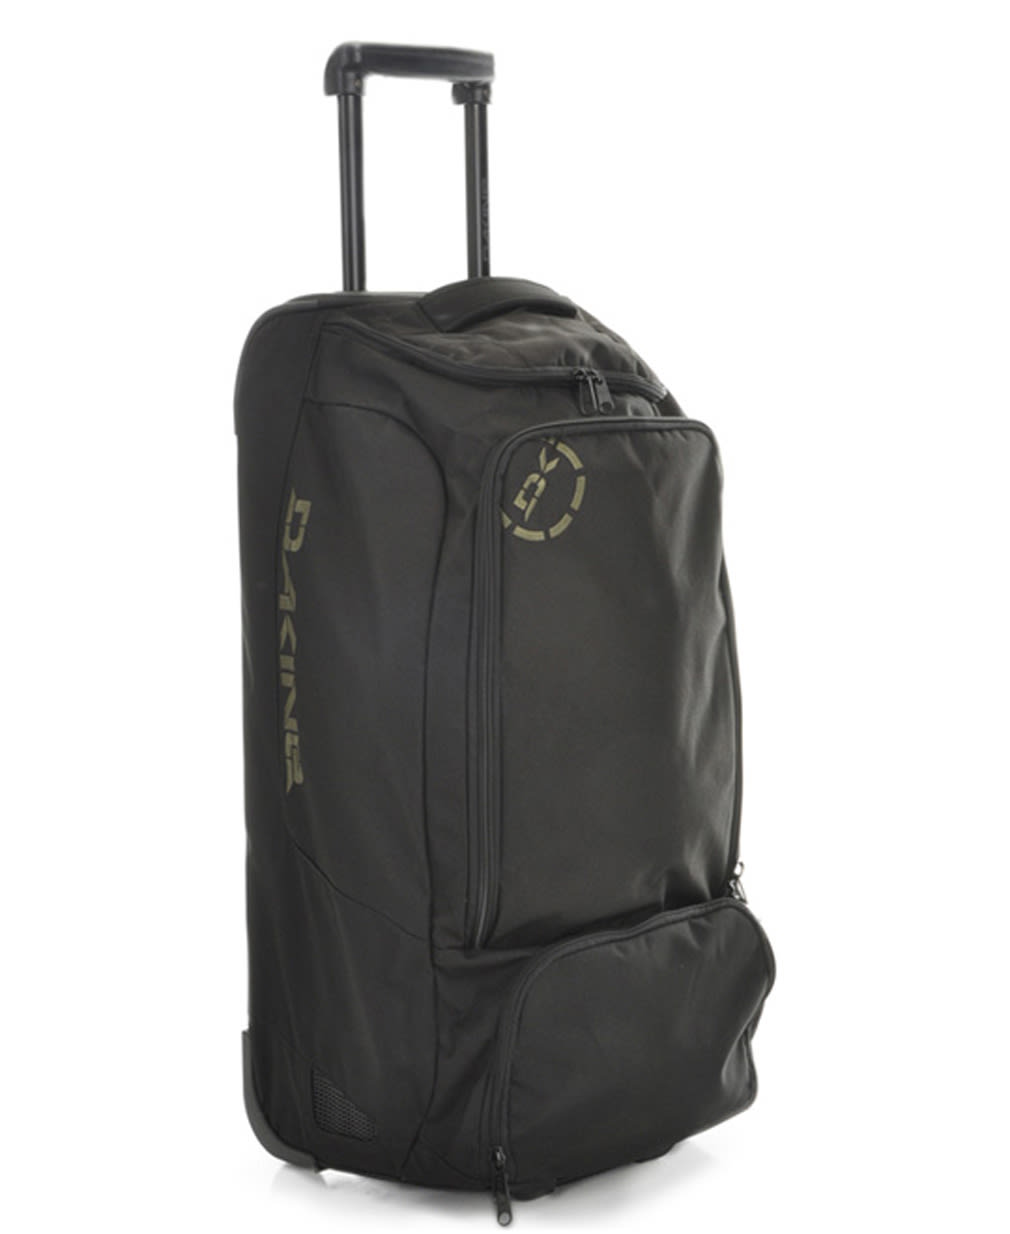 Shop for Dakine Ez Traveler 90 Travel Bag Black - Men's